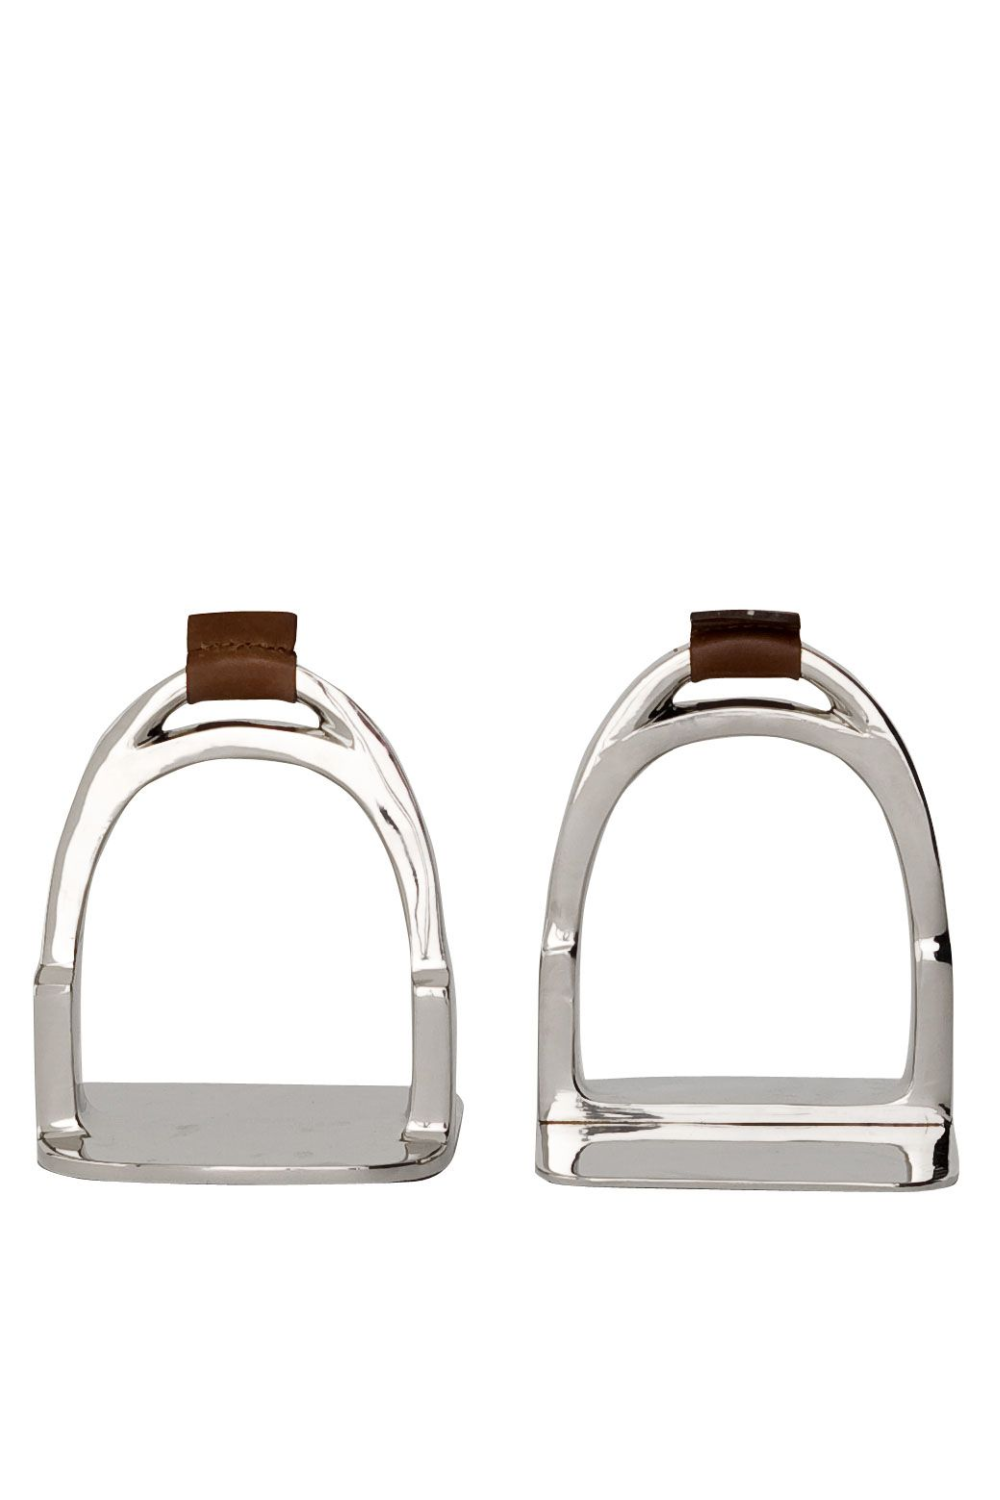 Horseshoe bookends (set of 2) | Eichholtz | #1 Eichholtz Online Retailer